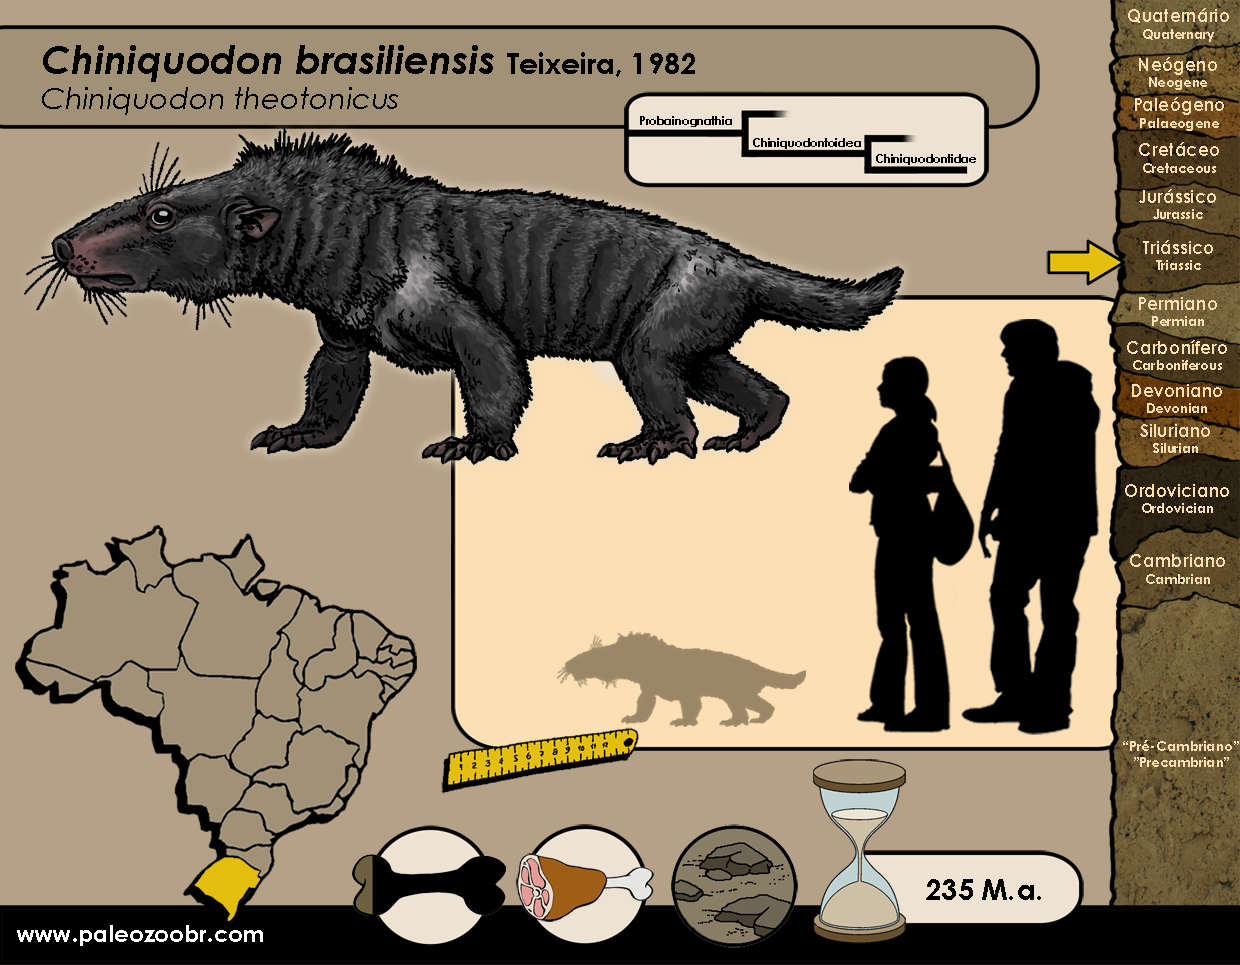 Chiniquodon brasiliensis